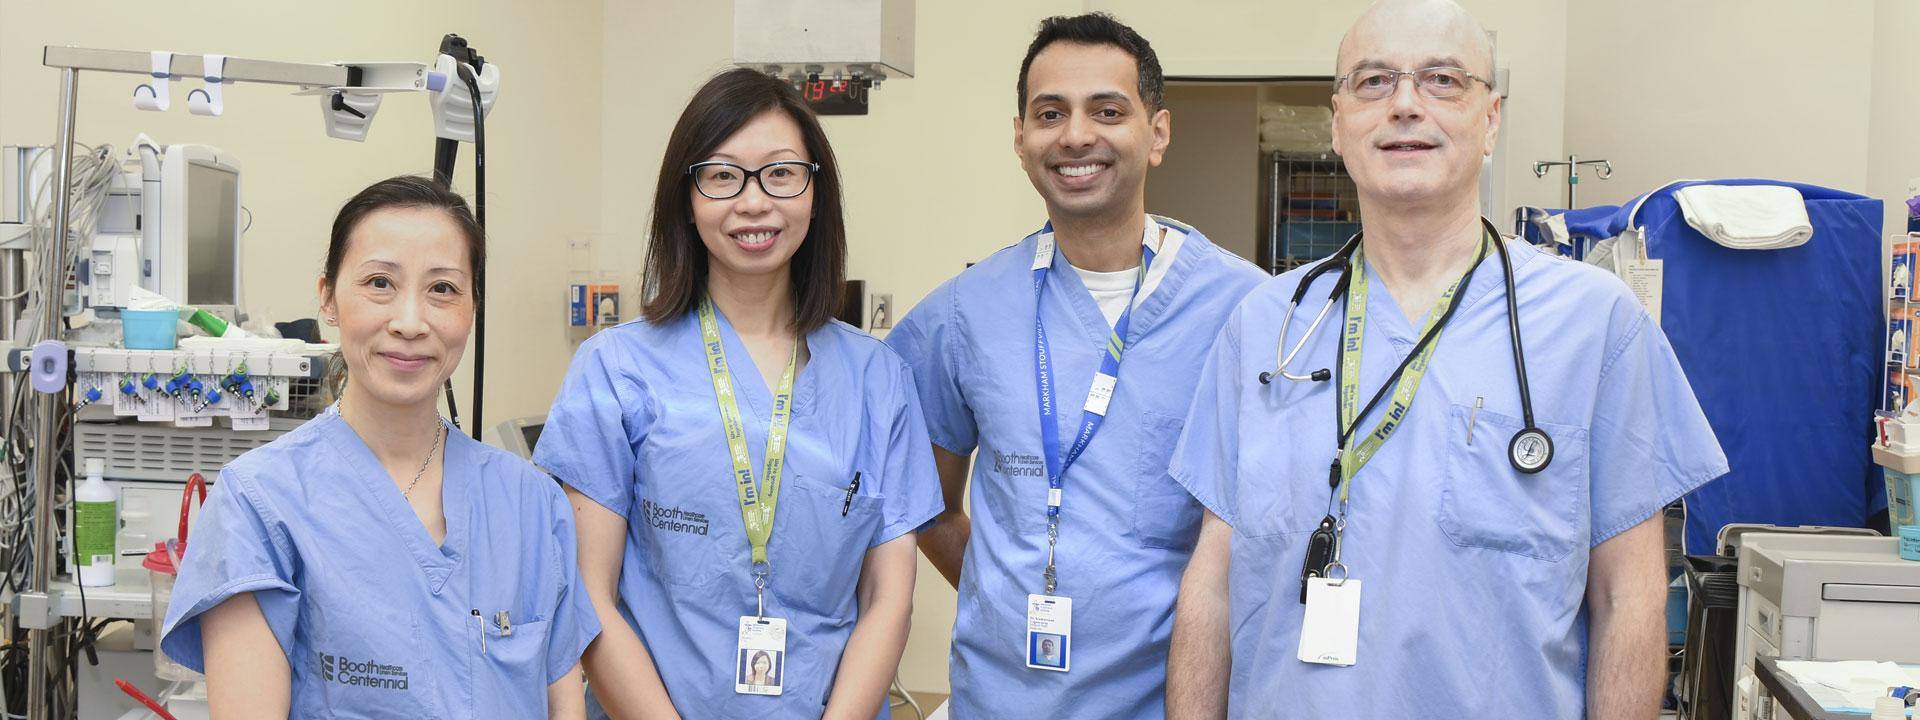 endoscopy program staff